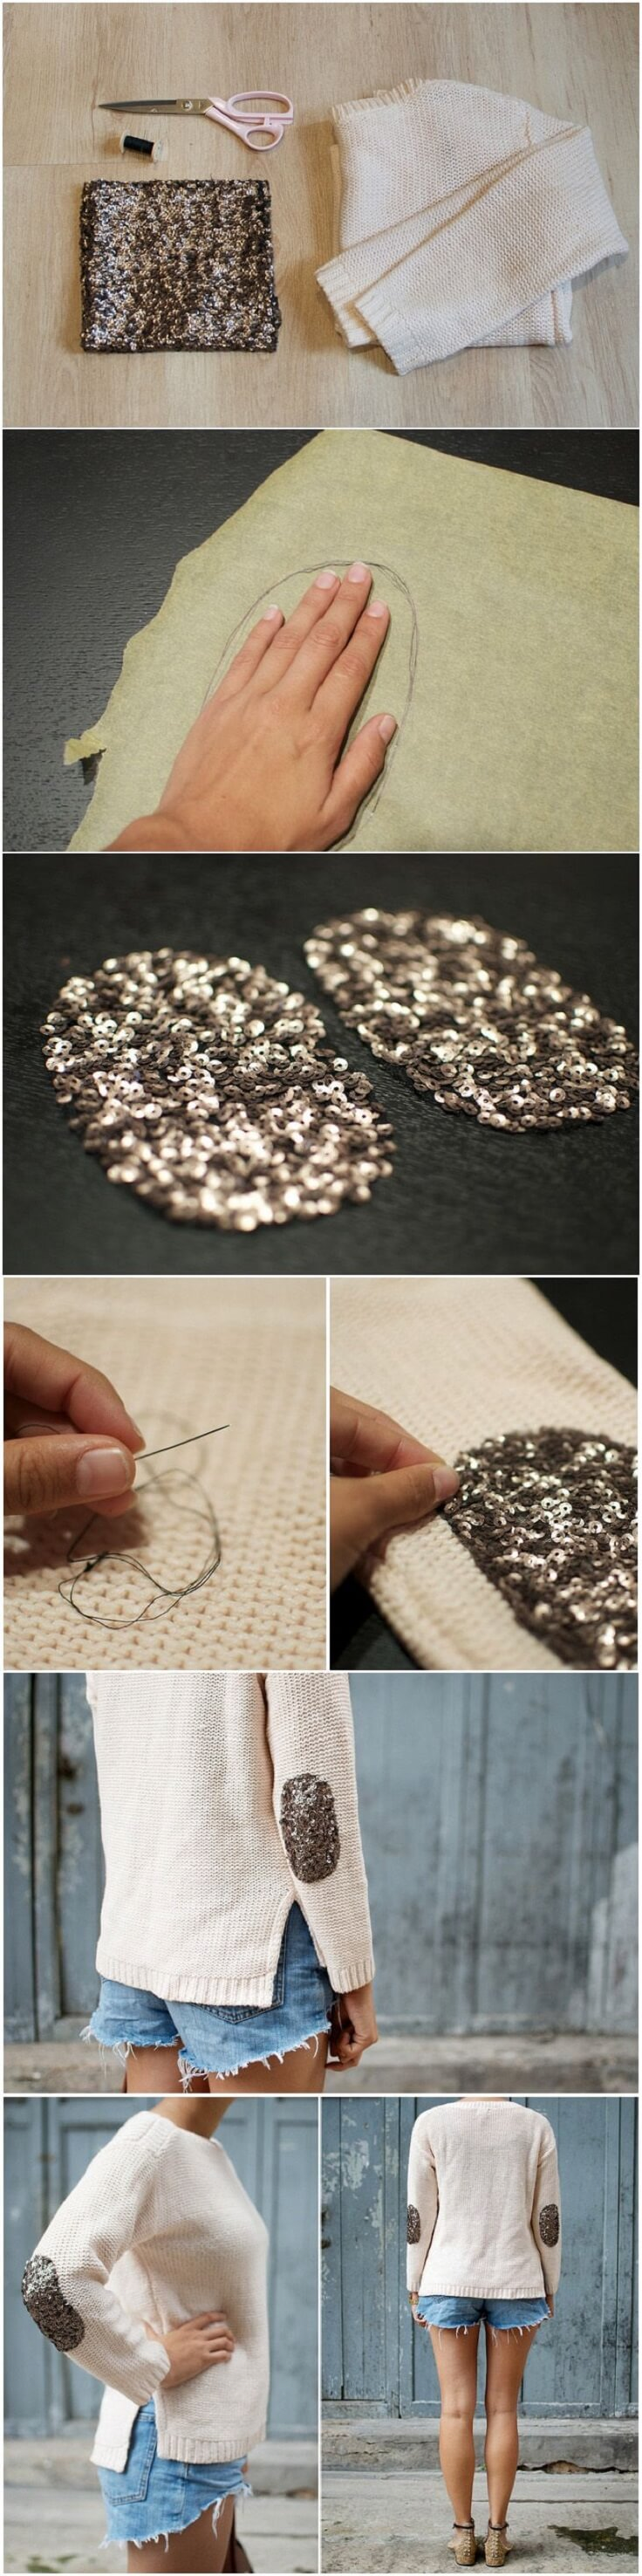 DIY-Glitter-Elbow-Patch-Sweater-k4craft DIY Clothing Hacks to Refashion Your Clothes